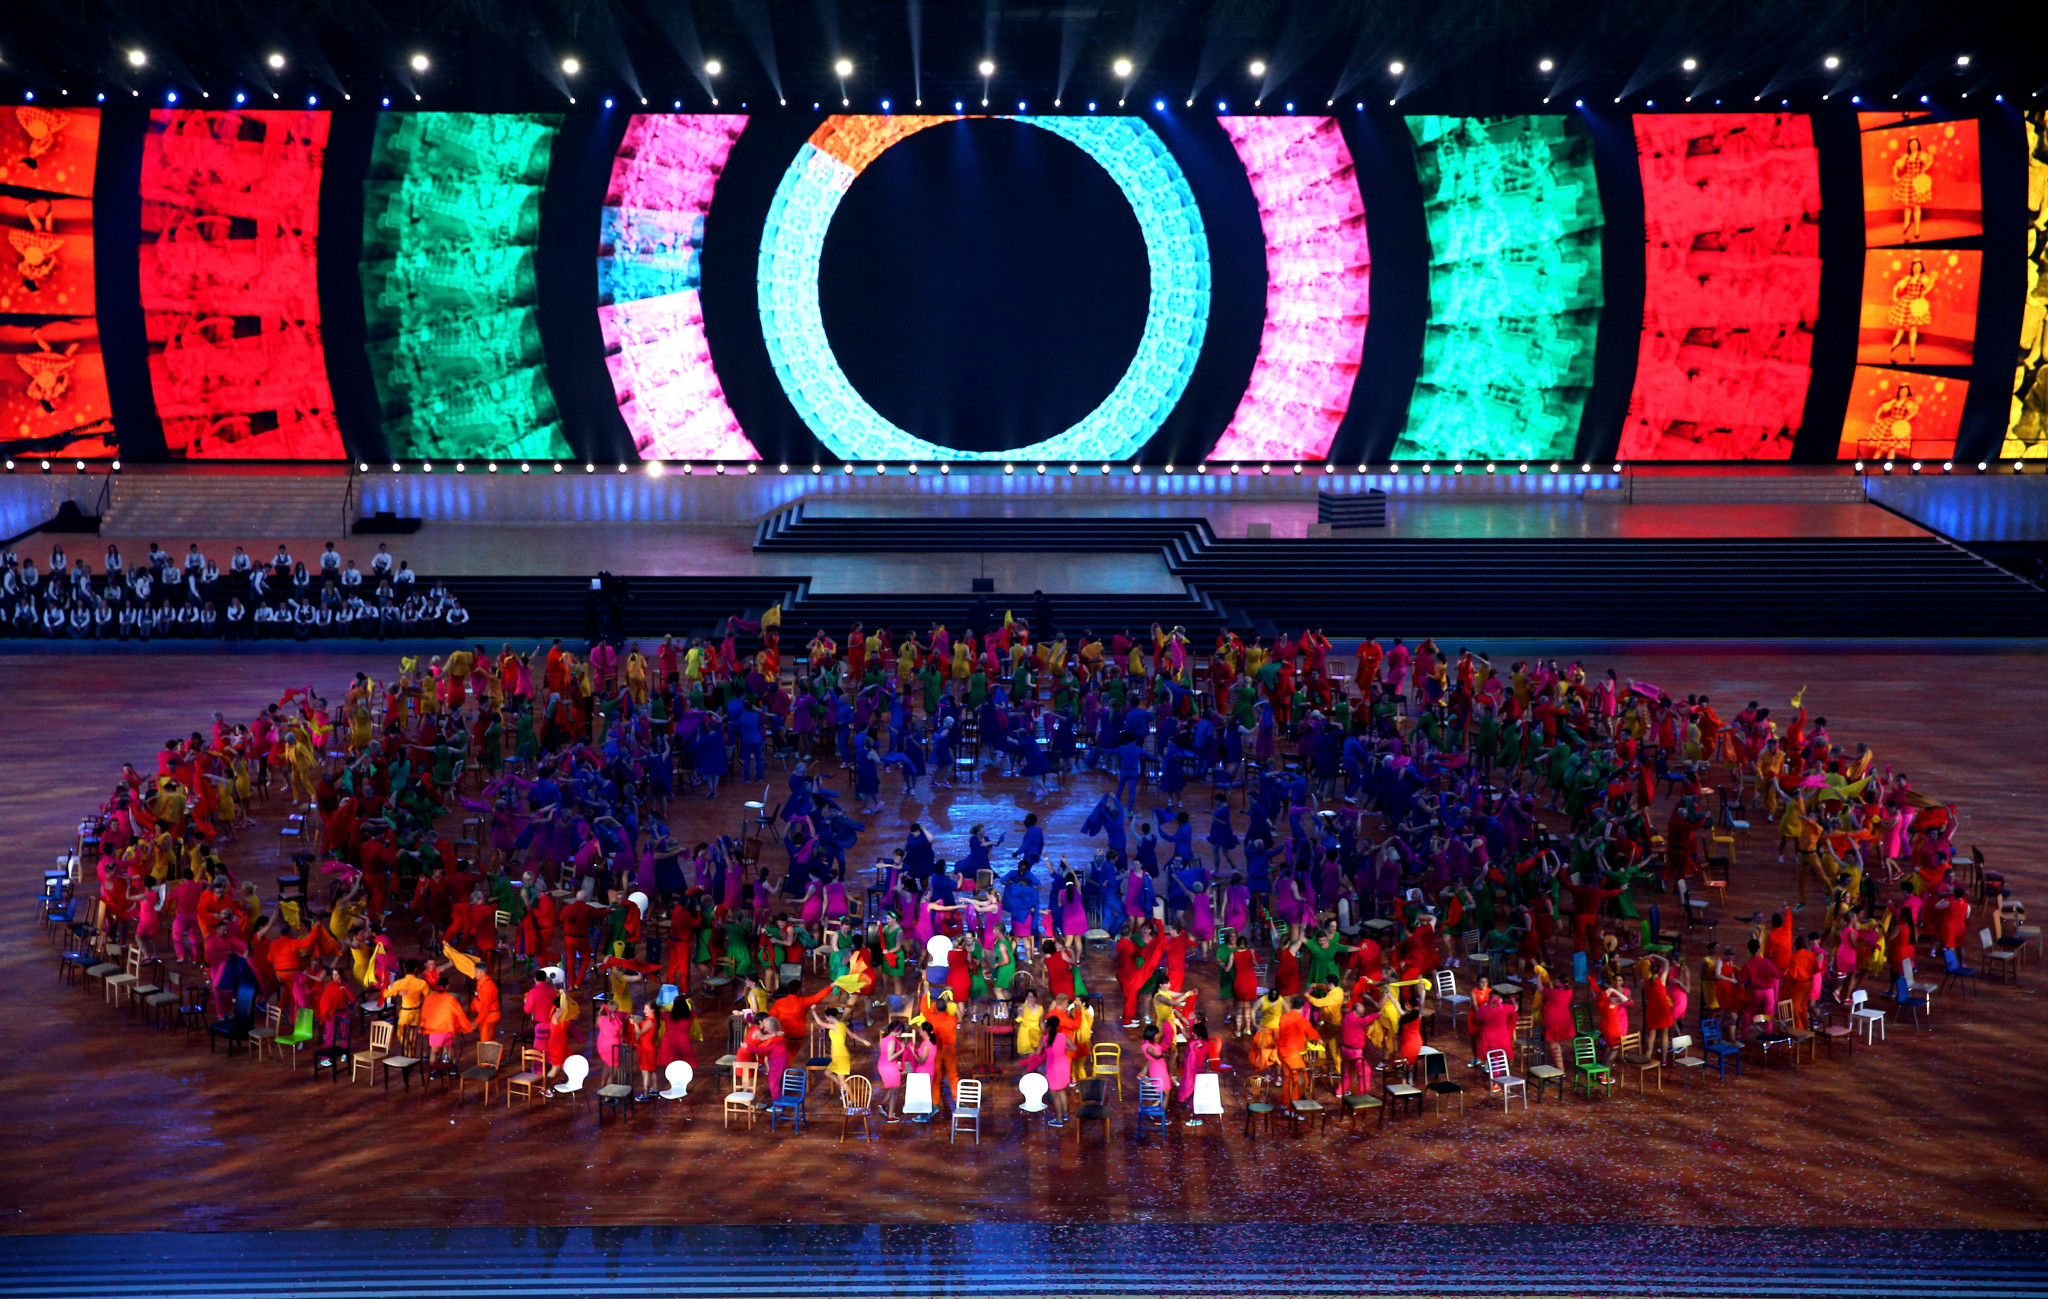 Dancers perform during the Opening Ceremony for the Glasgow 2014 Commonwealth Games at Celtic Park on July 23, 2014 in Glasgow, Scotland ©Getty Images